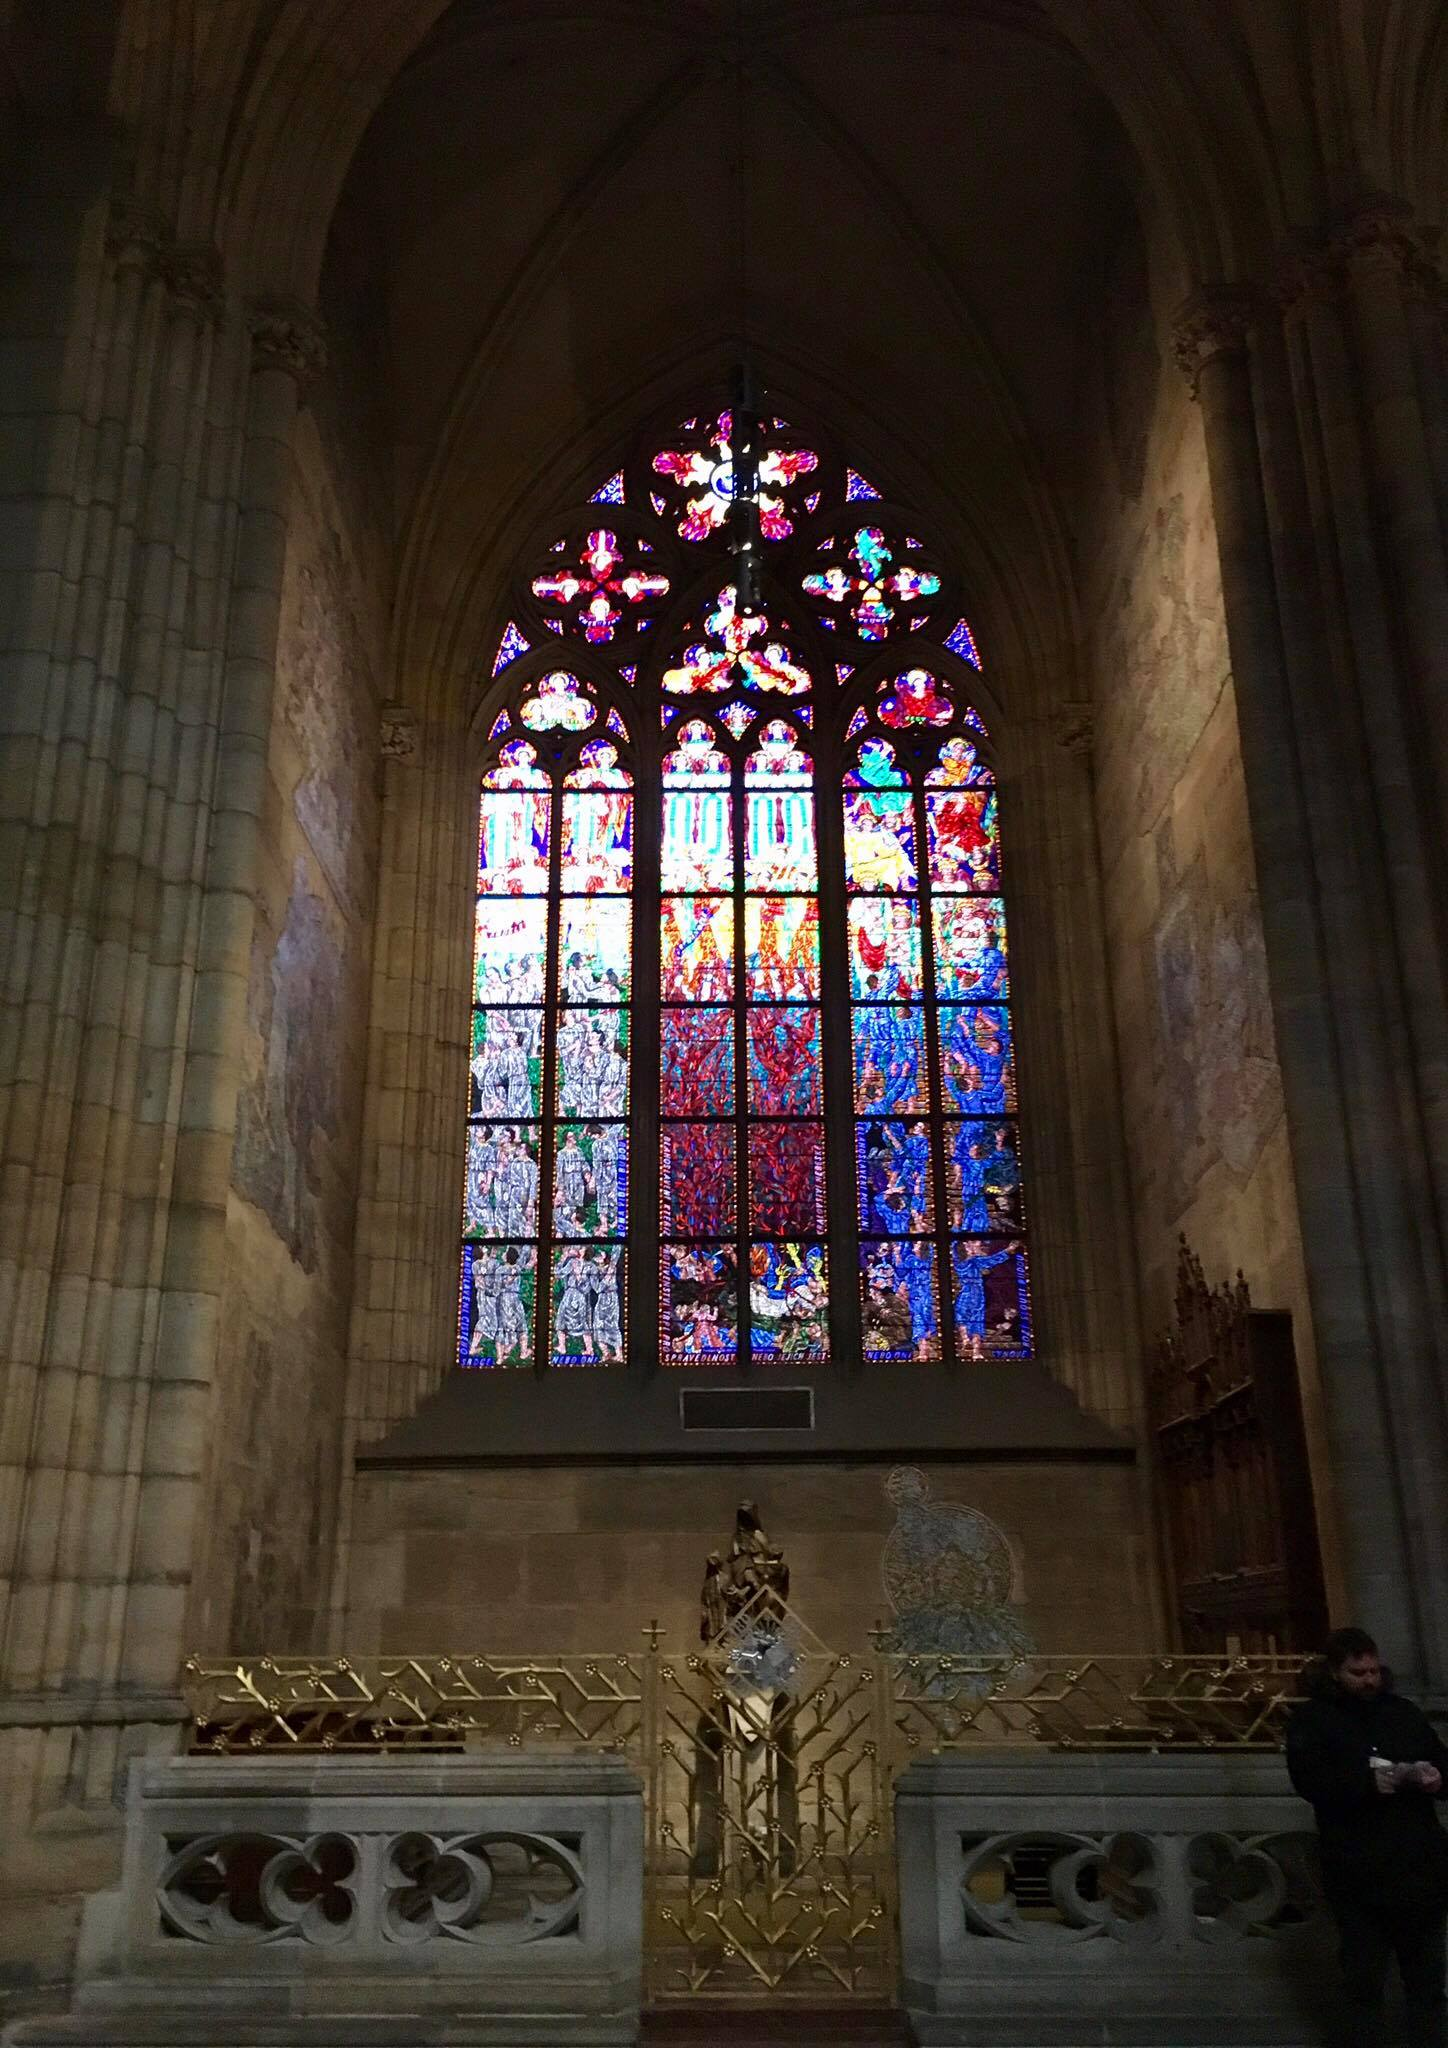 A stunning stained-glass window off to one side of the cathedral.